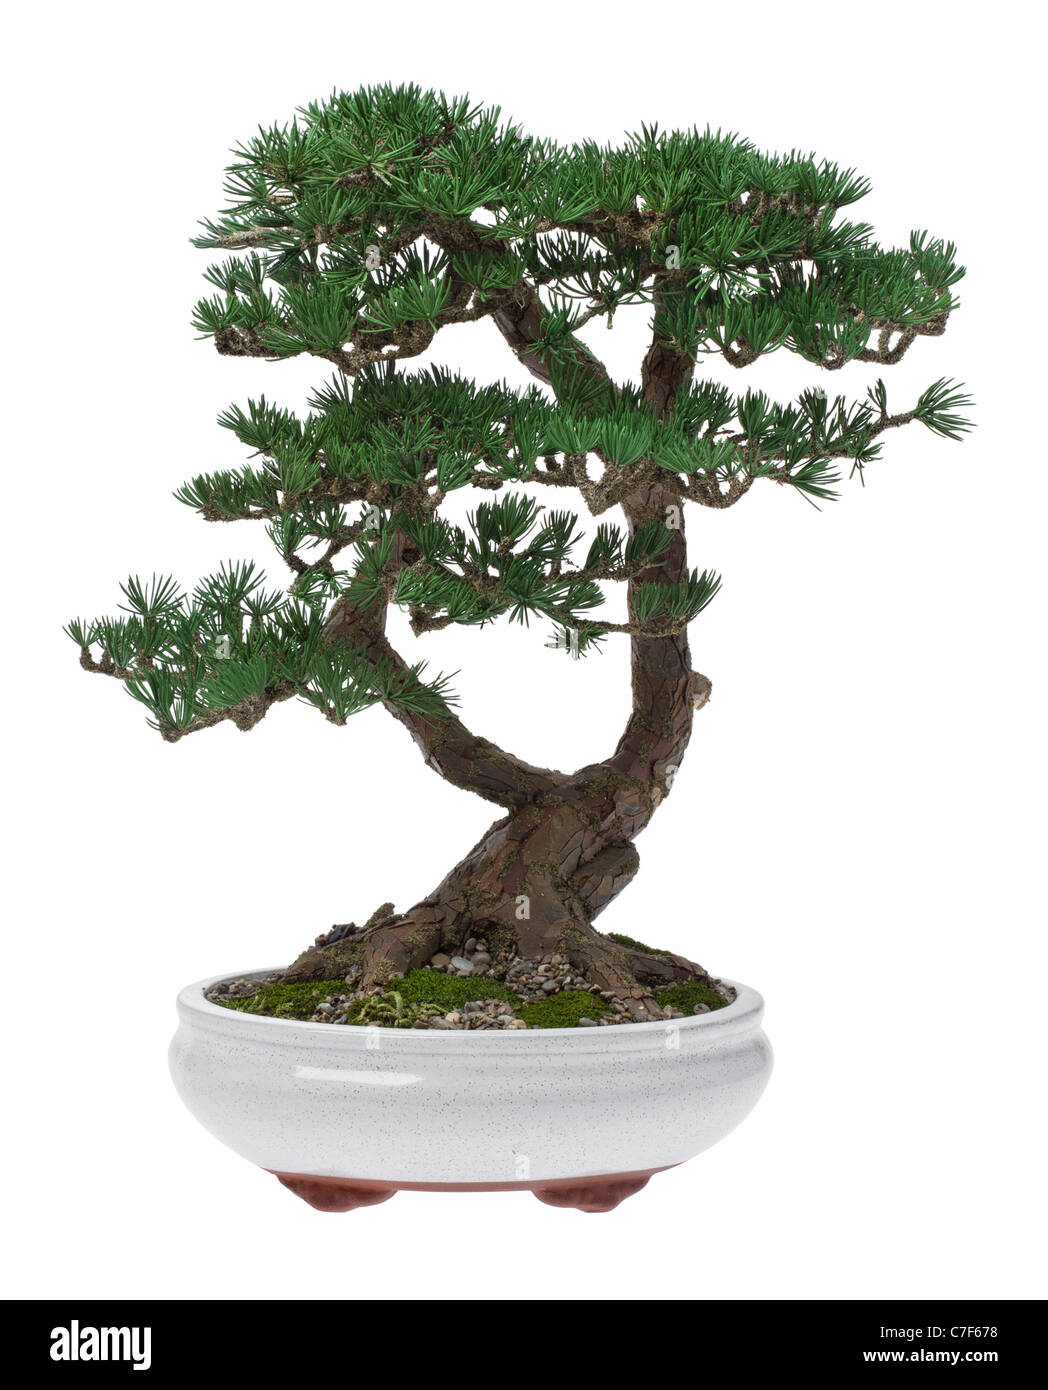 A small bonsai tree in a ceramic pot isolated on a white background a small bonsai tree in a ceramic pot isolated on a white background mightylinksfo